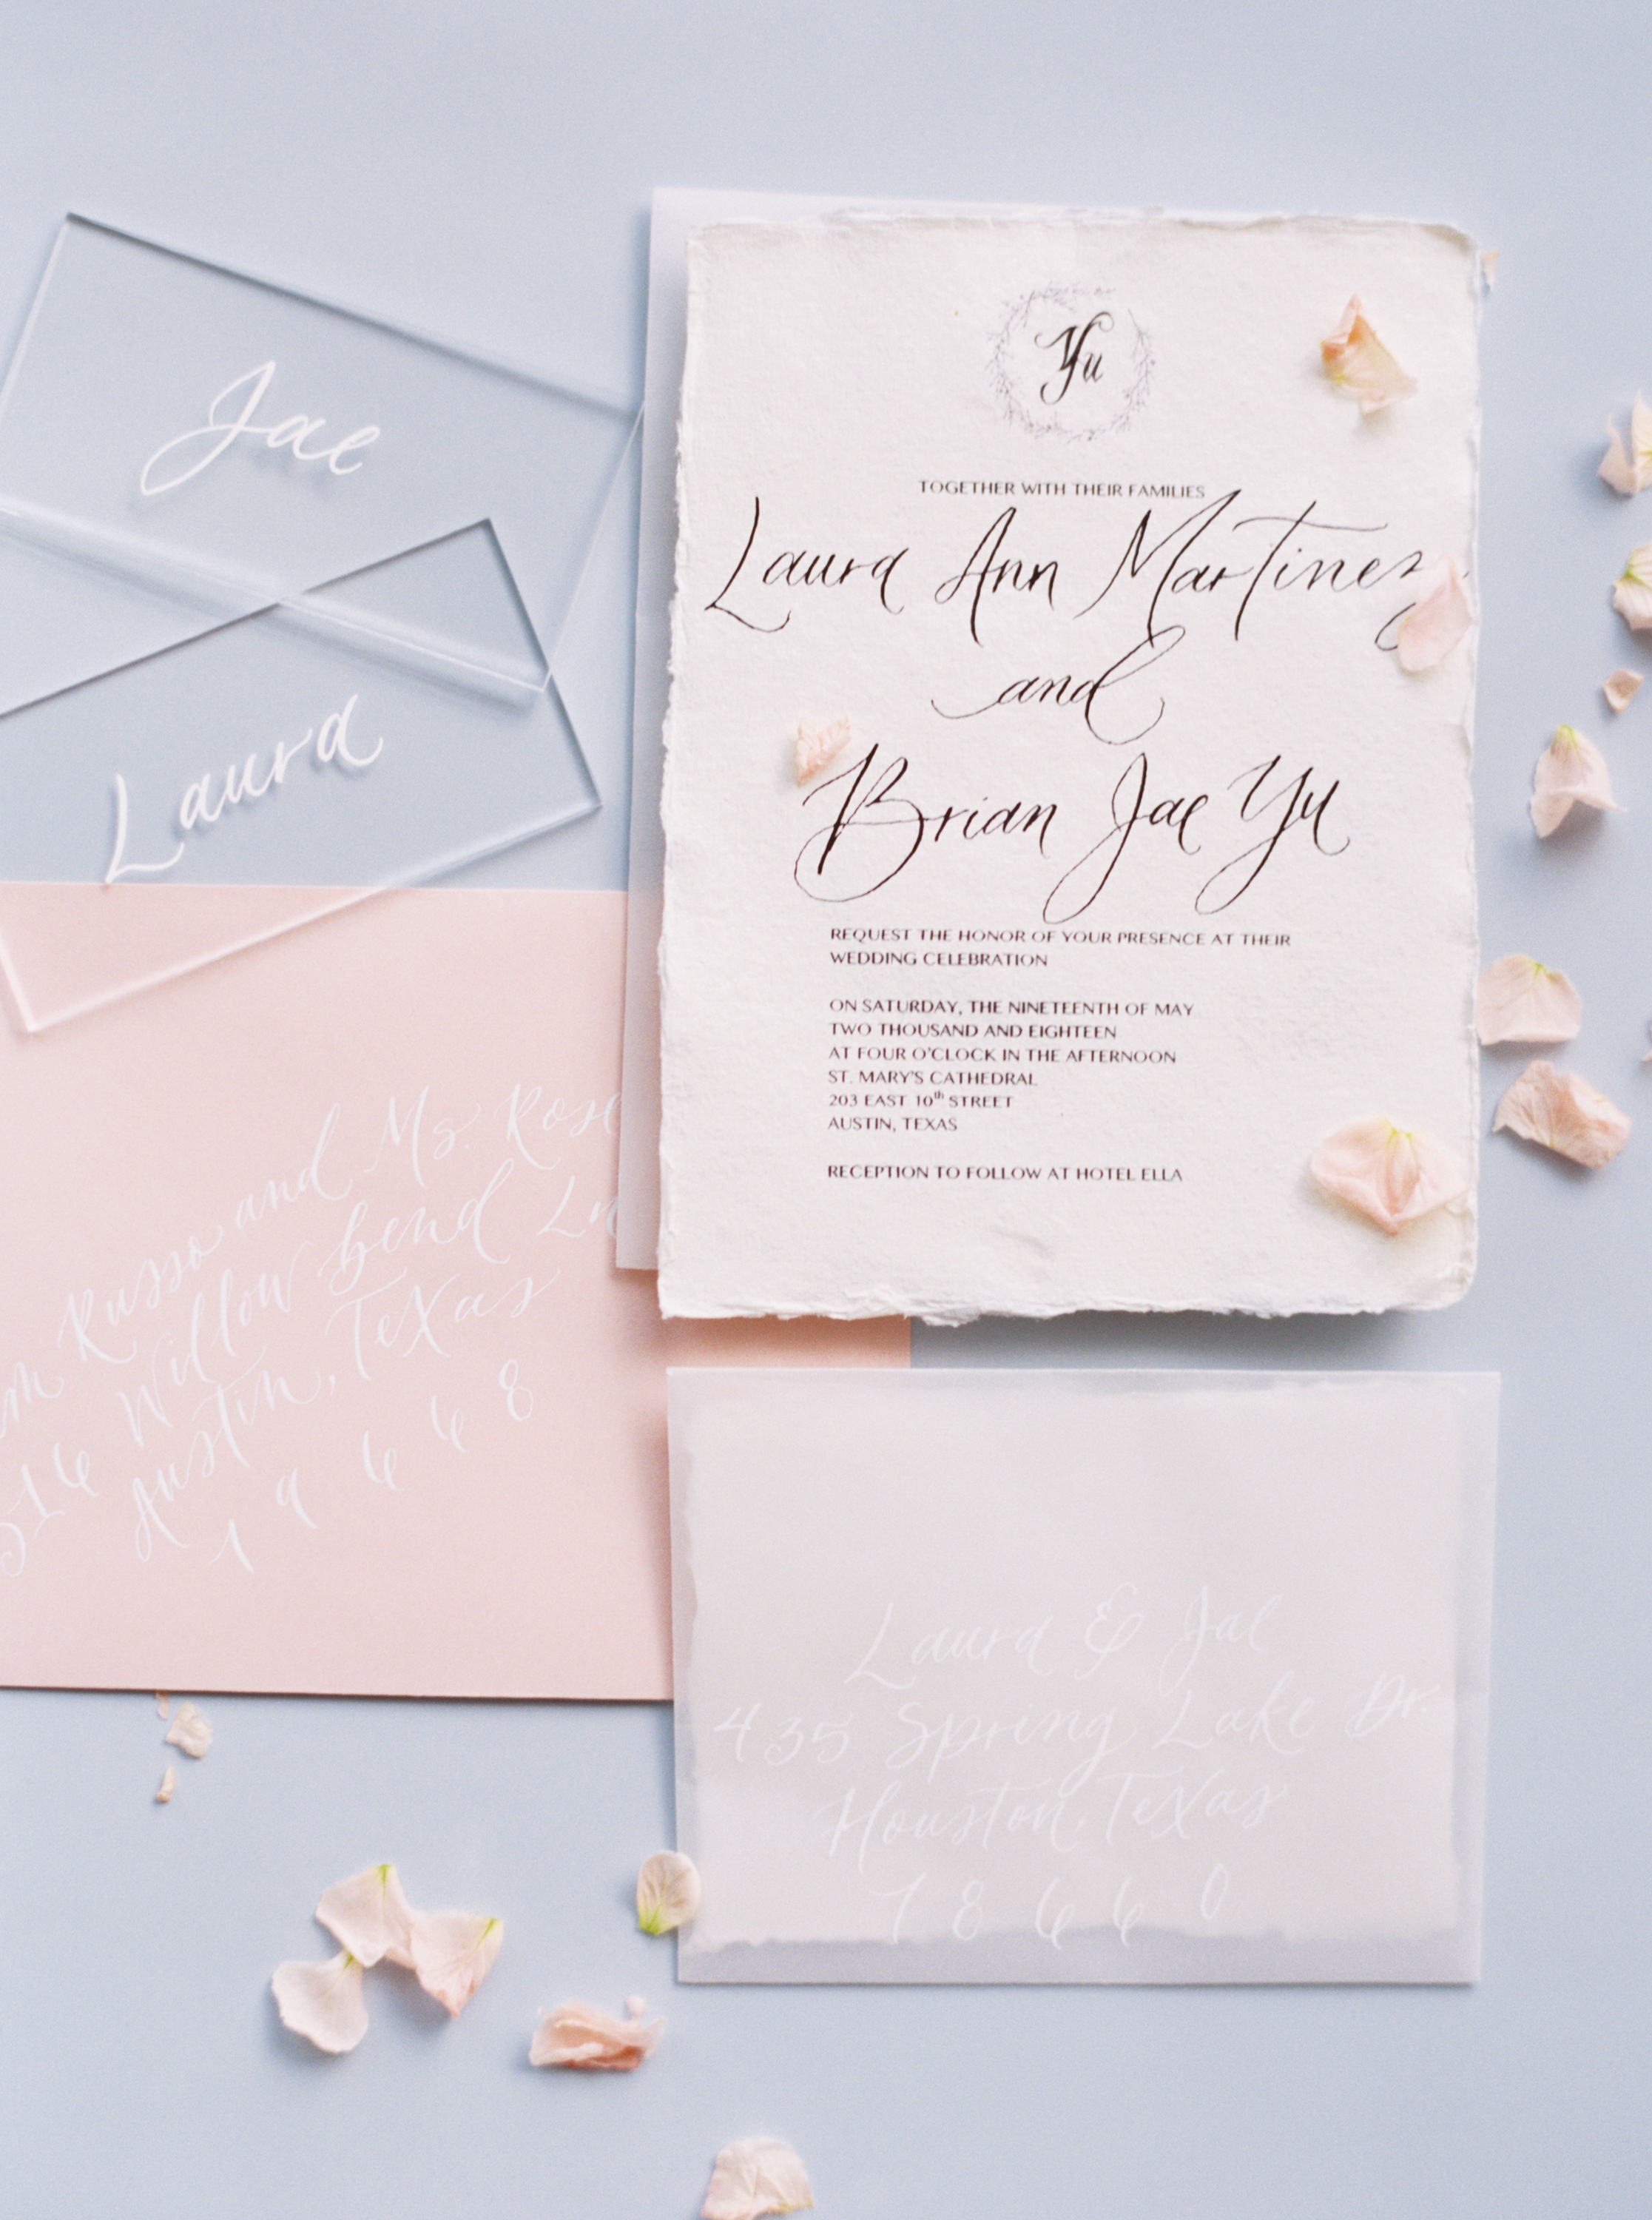 You're Invited! - If you, like us, want the wedding to be featured, help us secure an unused copy of the invitation, envelope (calligraphed is better), rsvp card, etc. Other papers details like a customized map of the area, place settings (these can be fakes as well)or welcome card to go in the goodie bag are prized possessions that publications want to see!